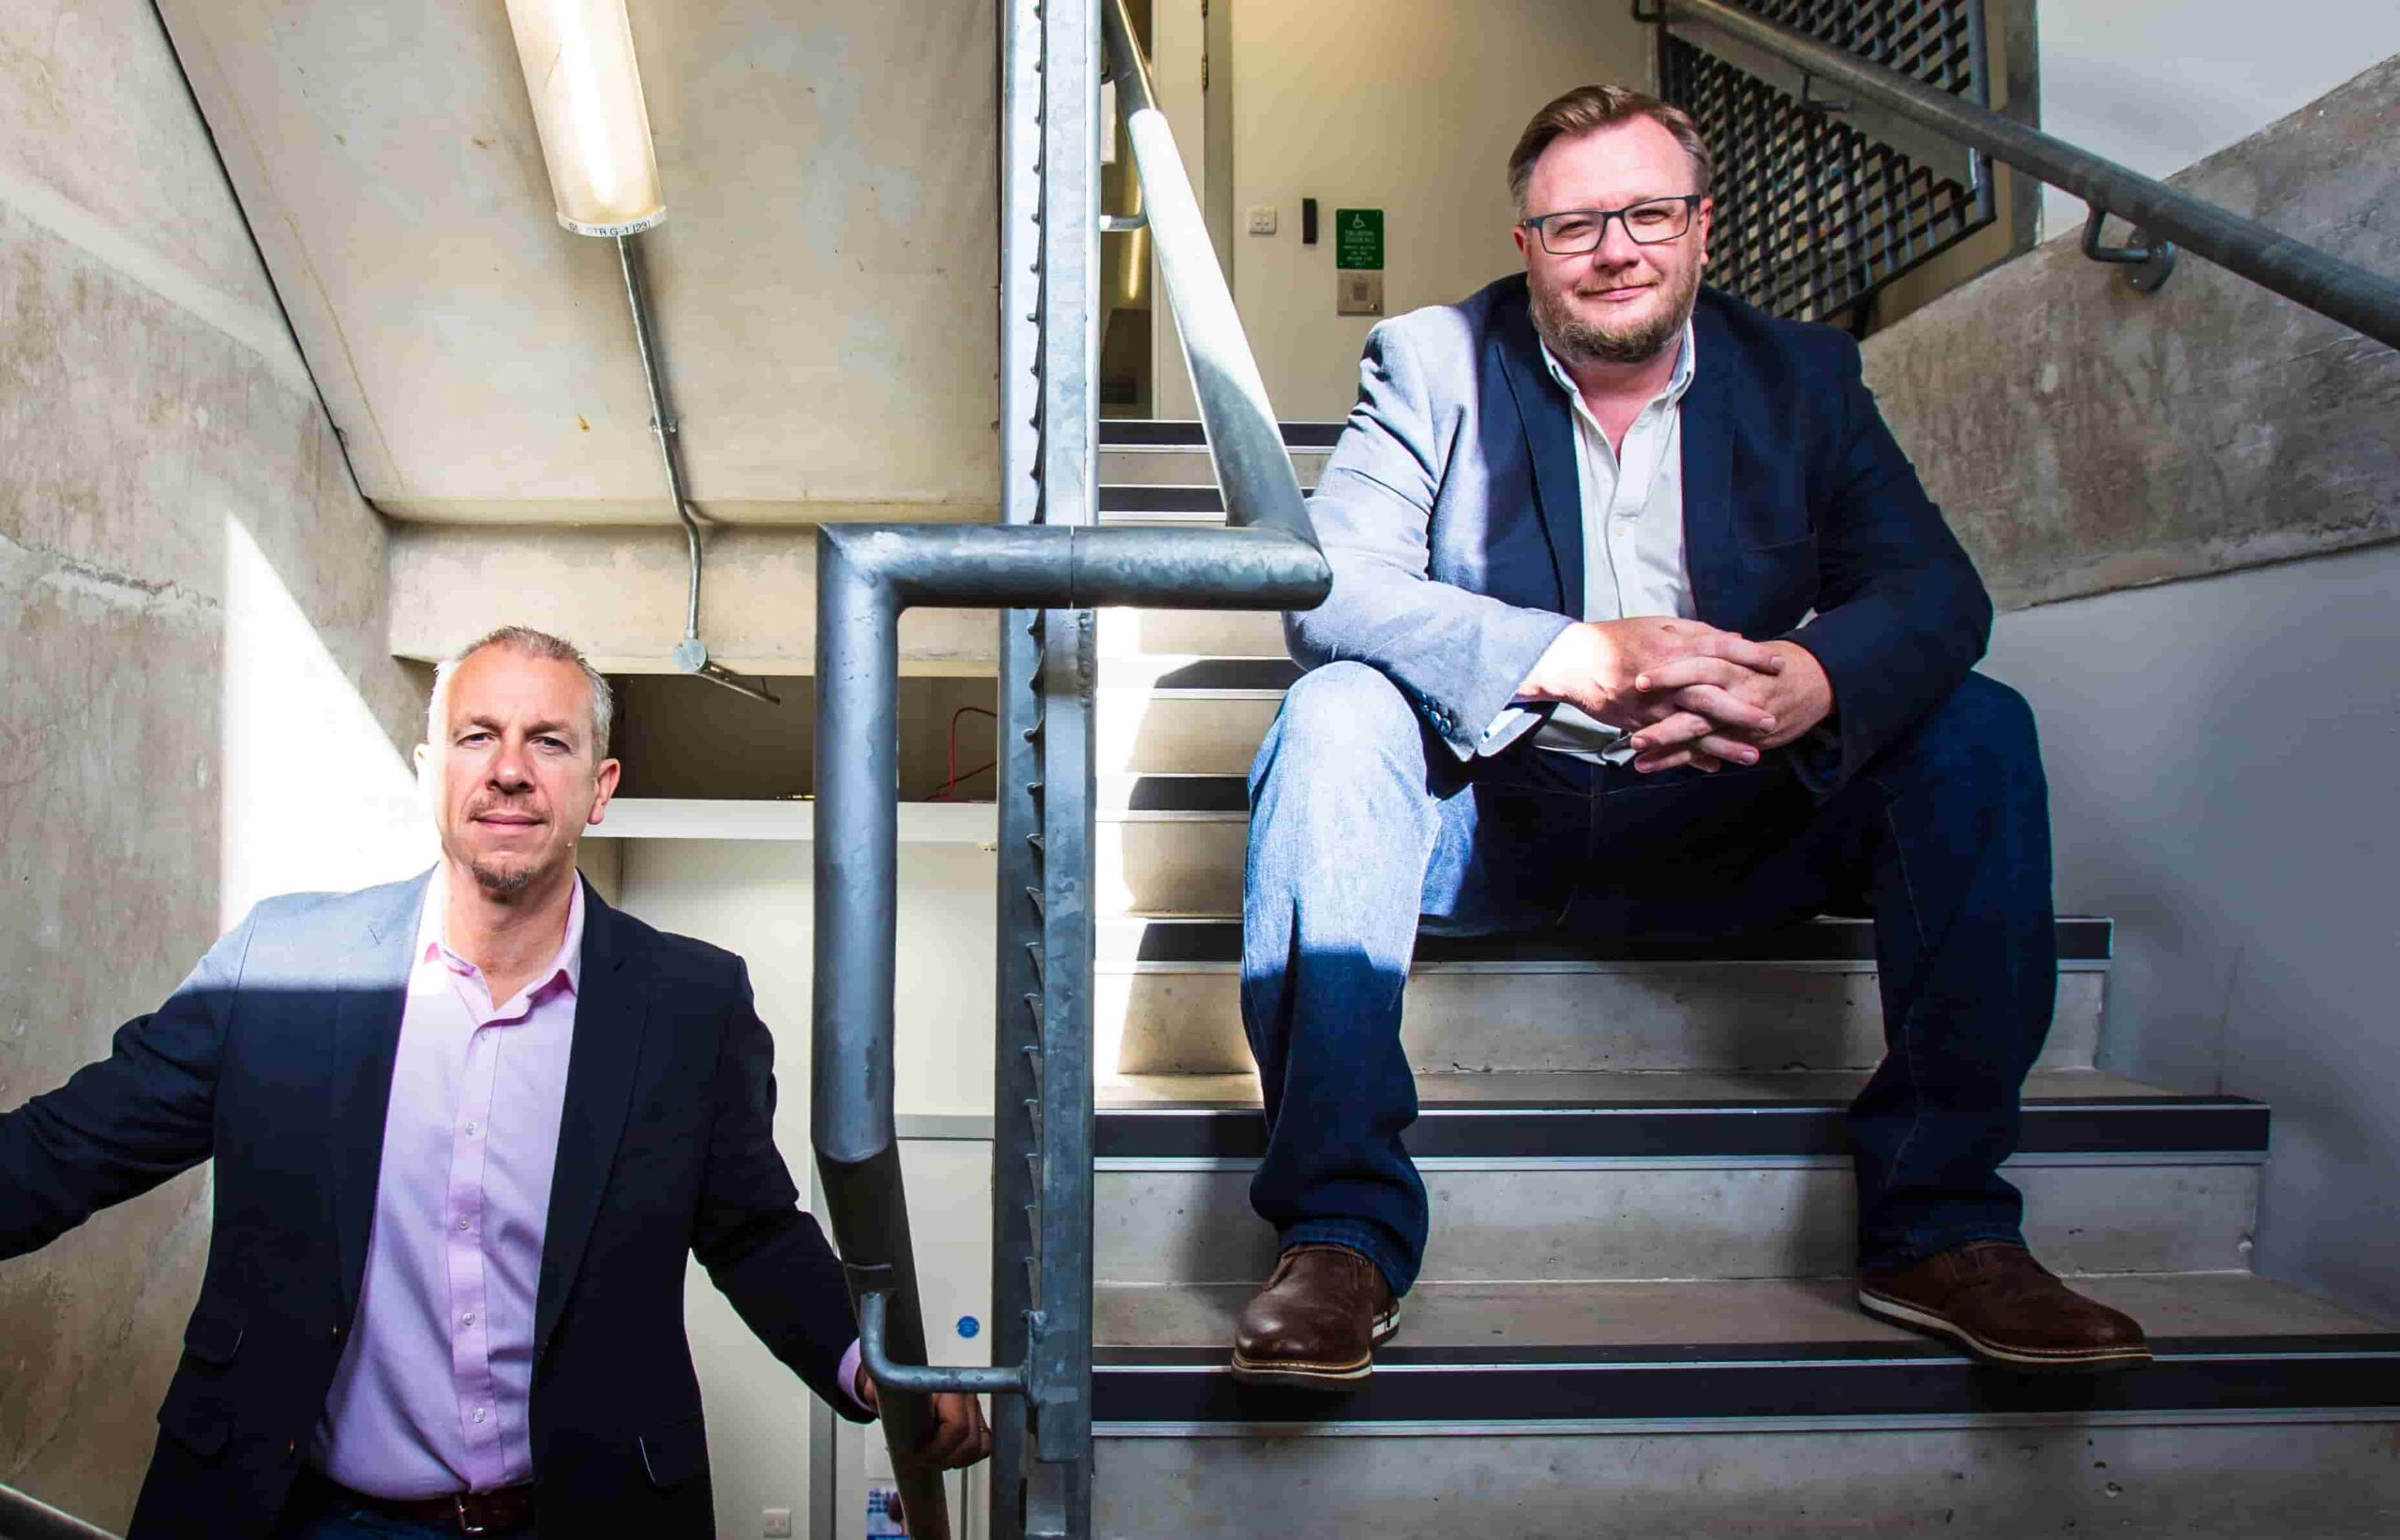 Monely (t/a Ilumoni) secures £340k Pre-Seed investment led by Move Ventures